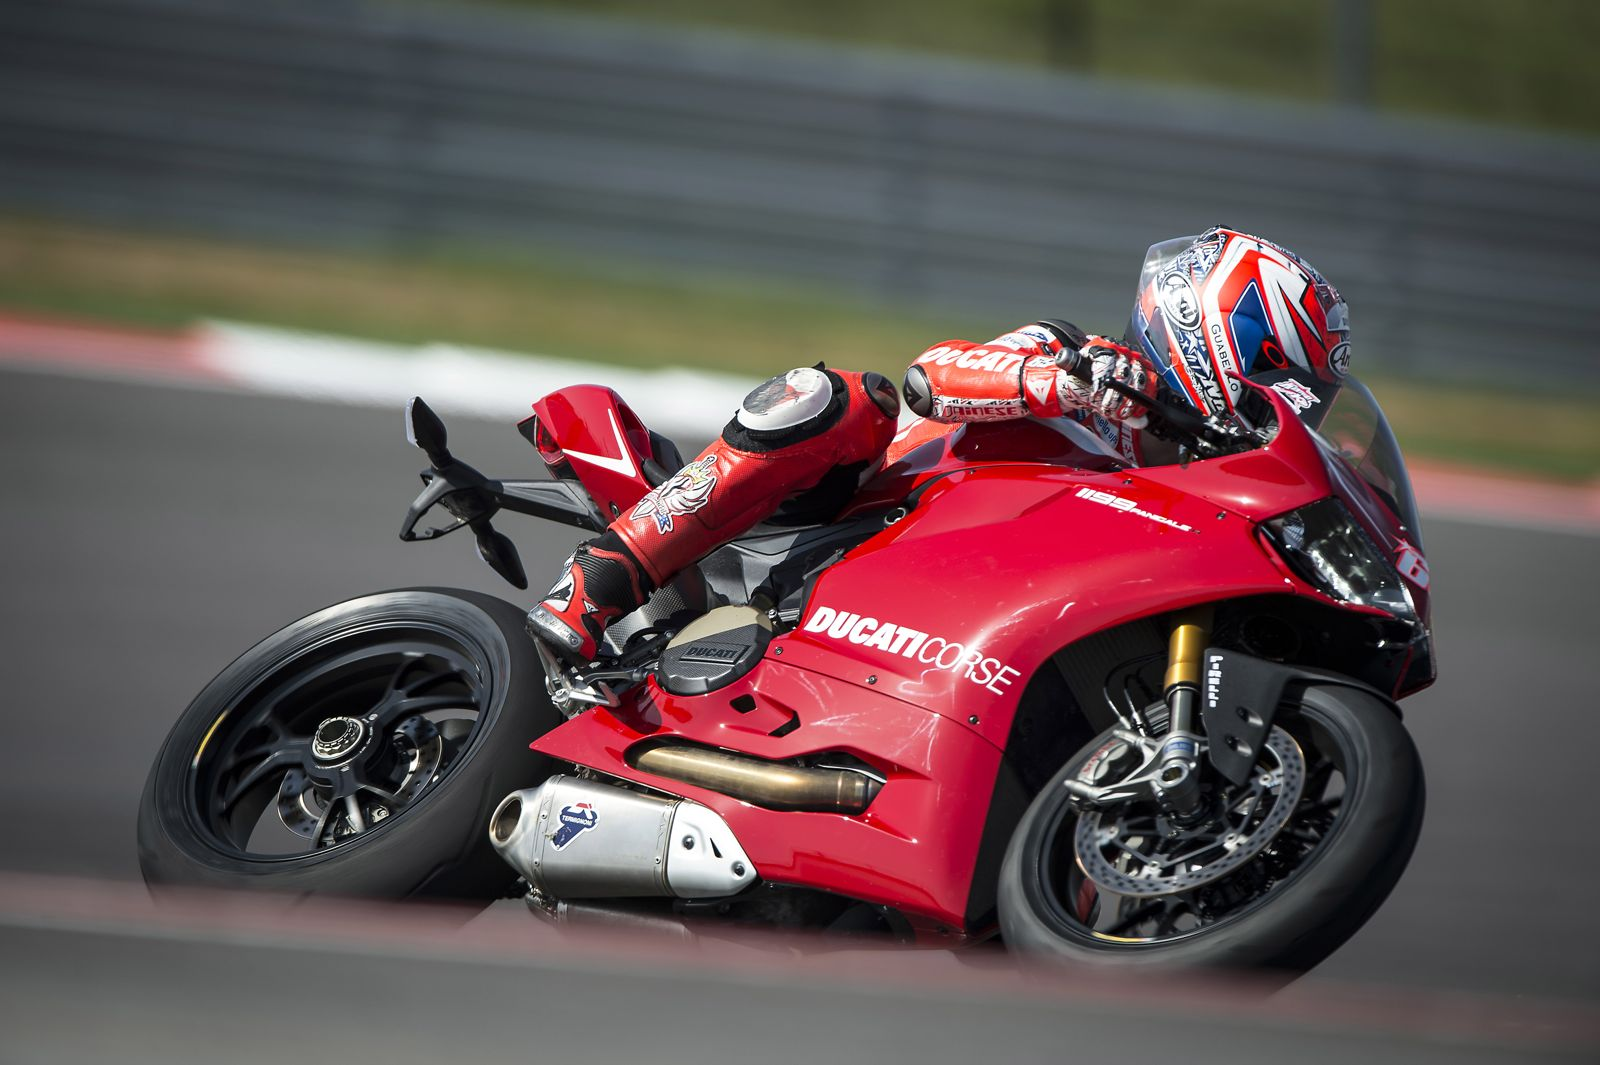 2013 Ducati 1199 Panigale R Official Pictures Autoevolution